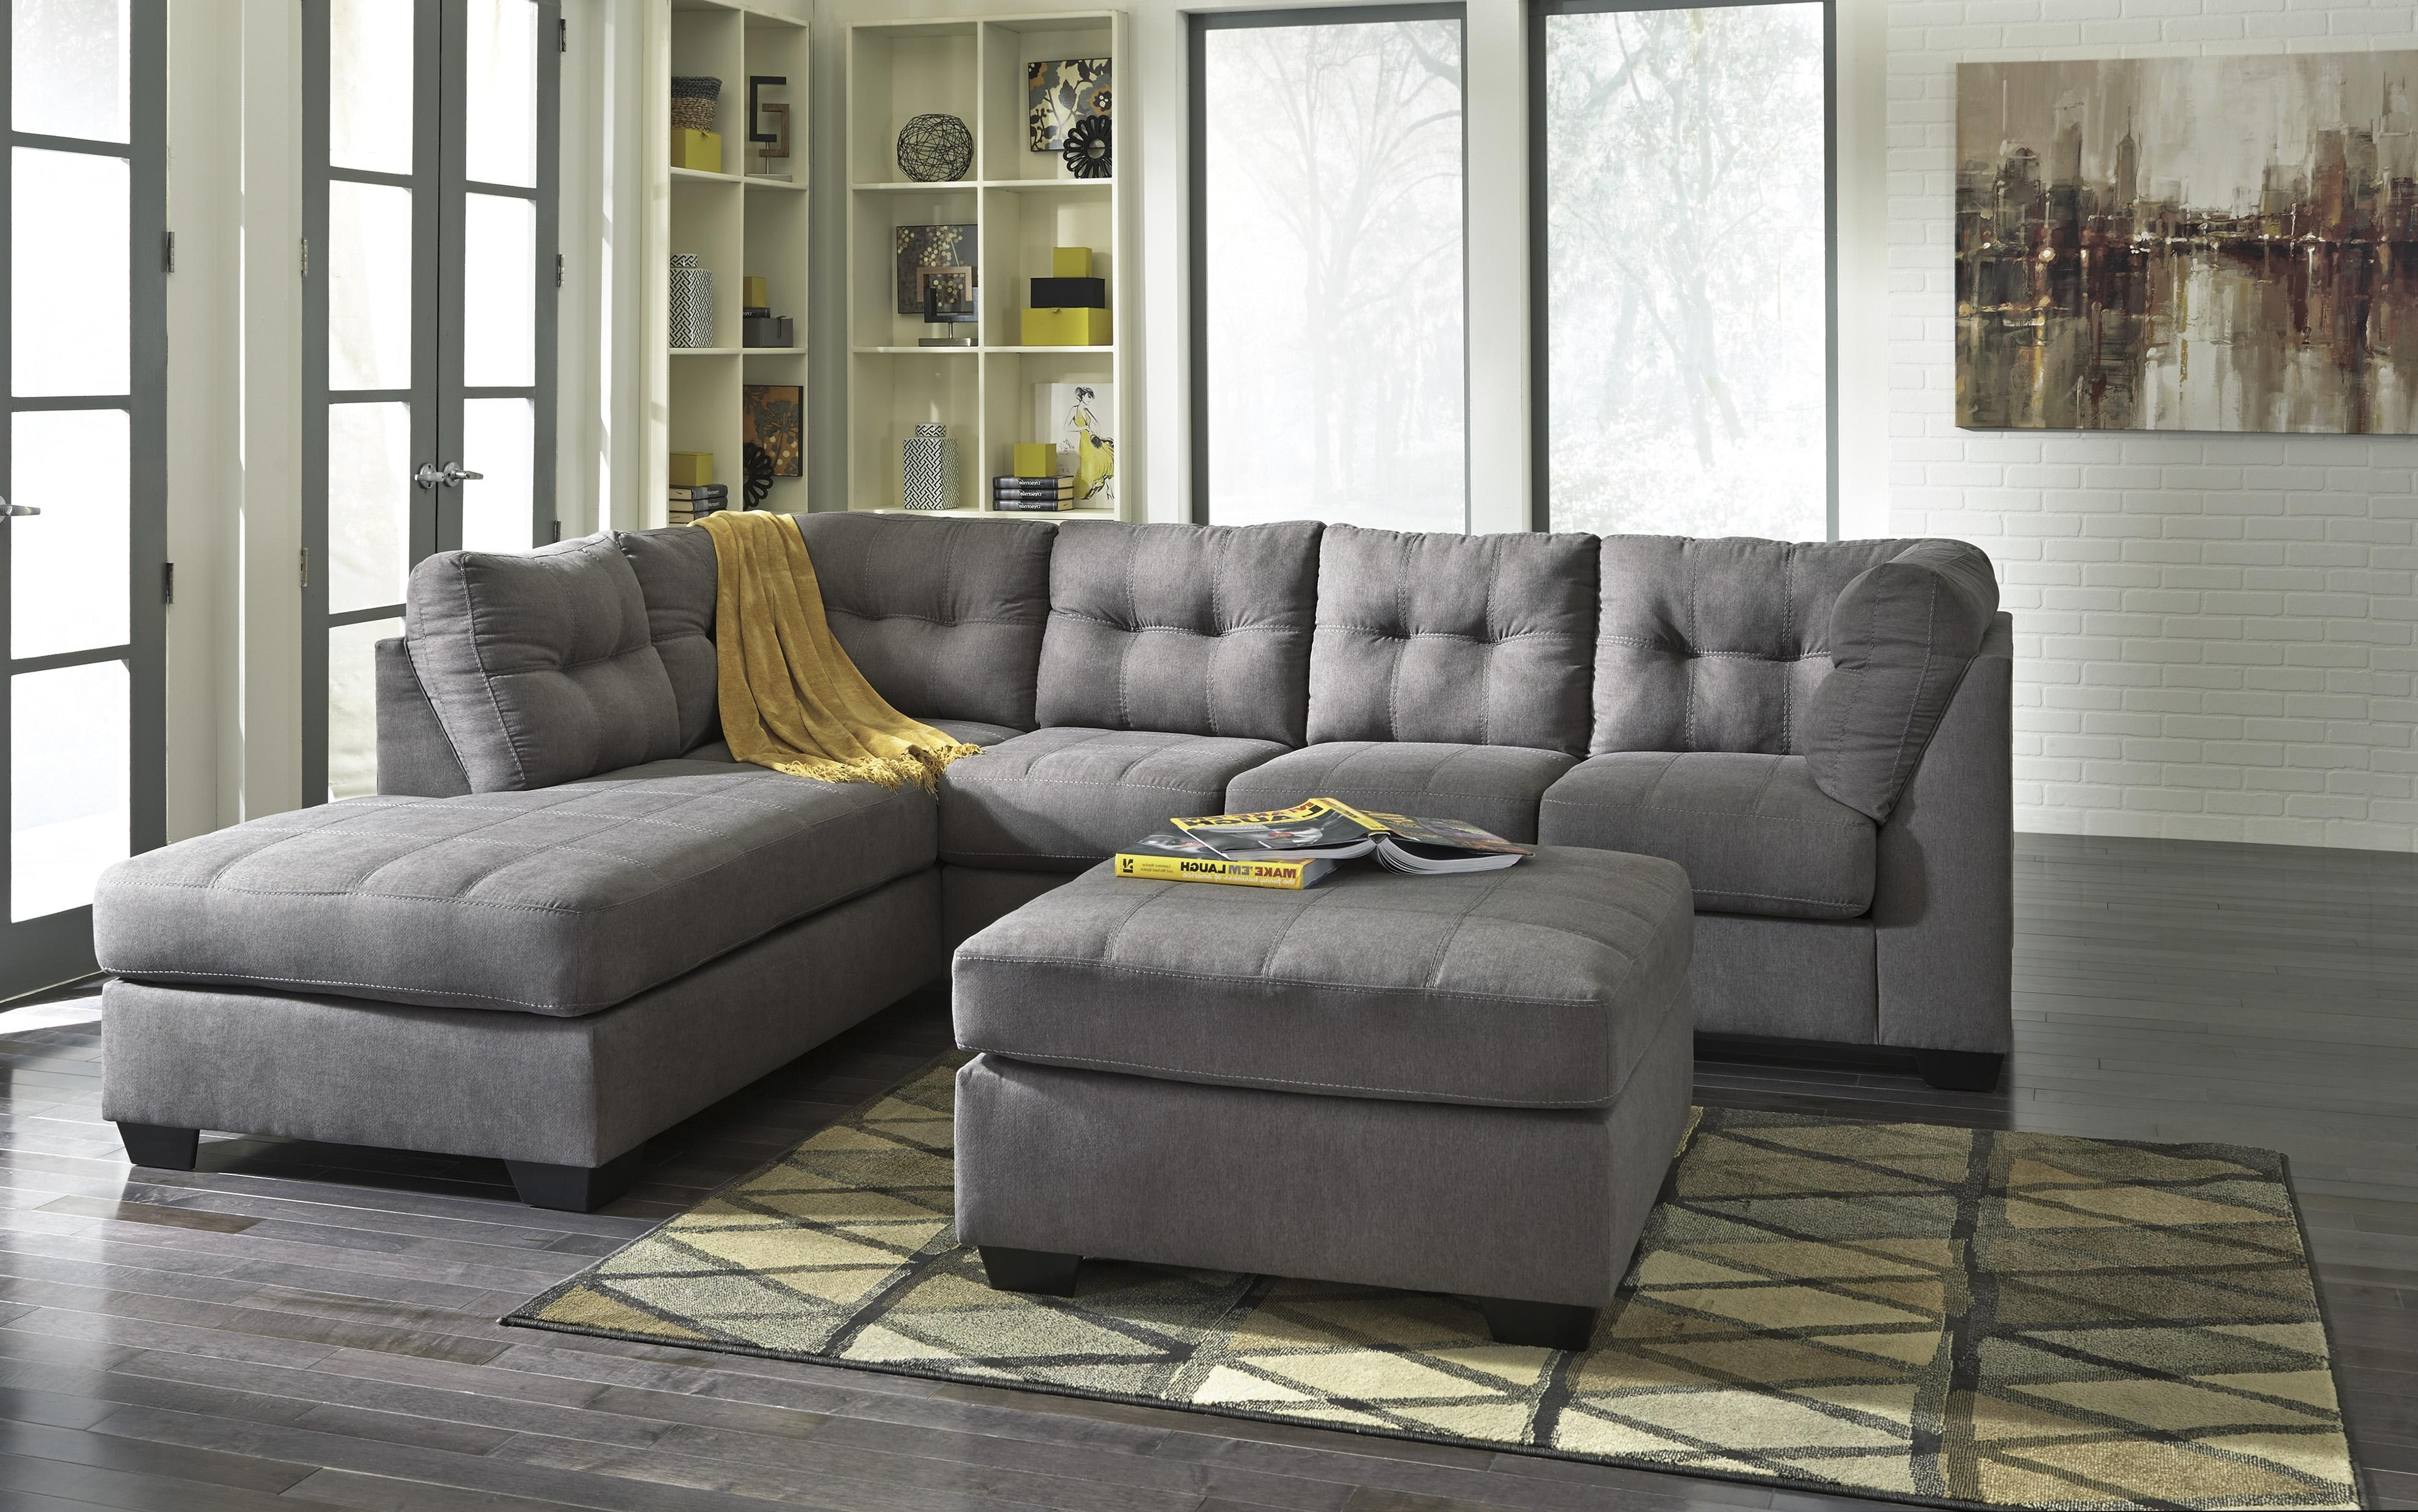 Benchcraft Maier – Charcoal 2 Piece Sectional W/ Sleeper Sofa In Most Recent Sofas With Chaise And Ottoman (View 2 of 20)